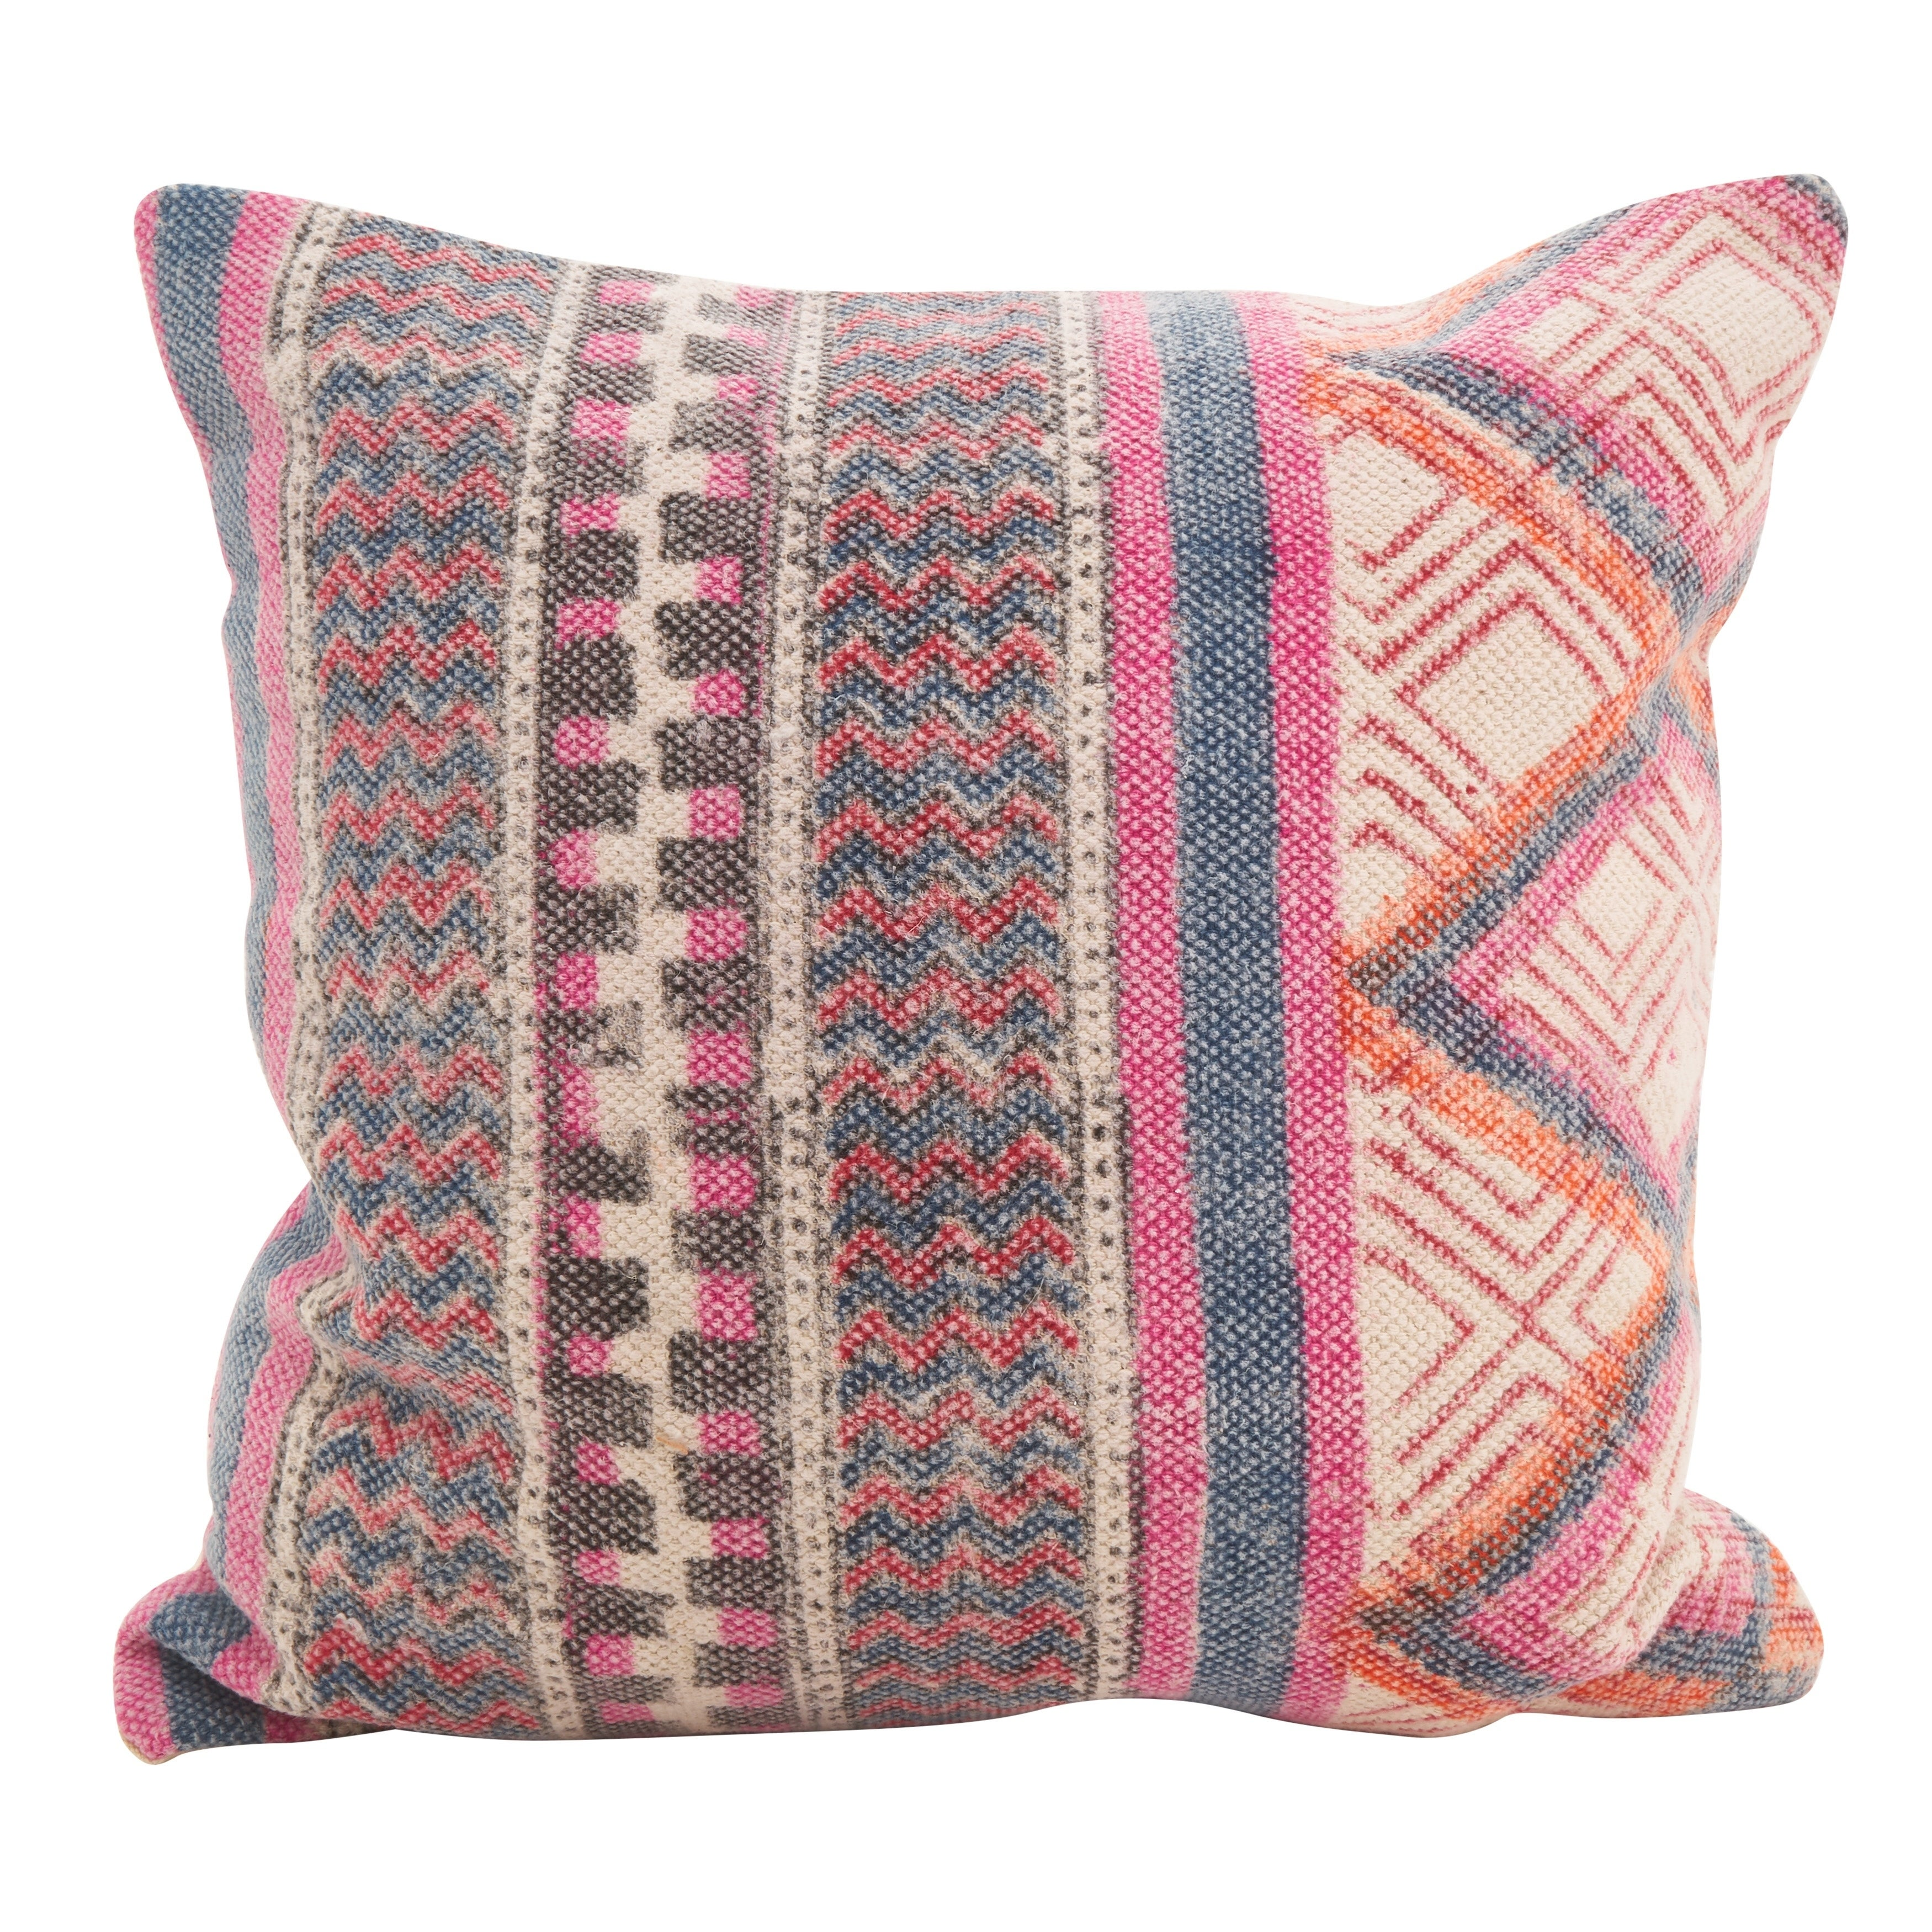 Shop Bohemian Mix Square Down Filled Throw Pillow - Free Shipping ...